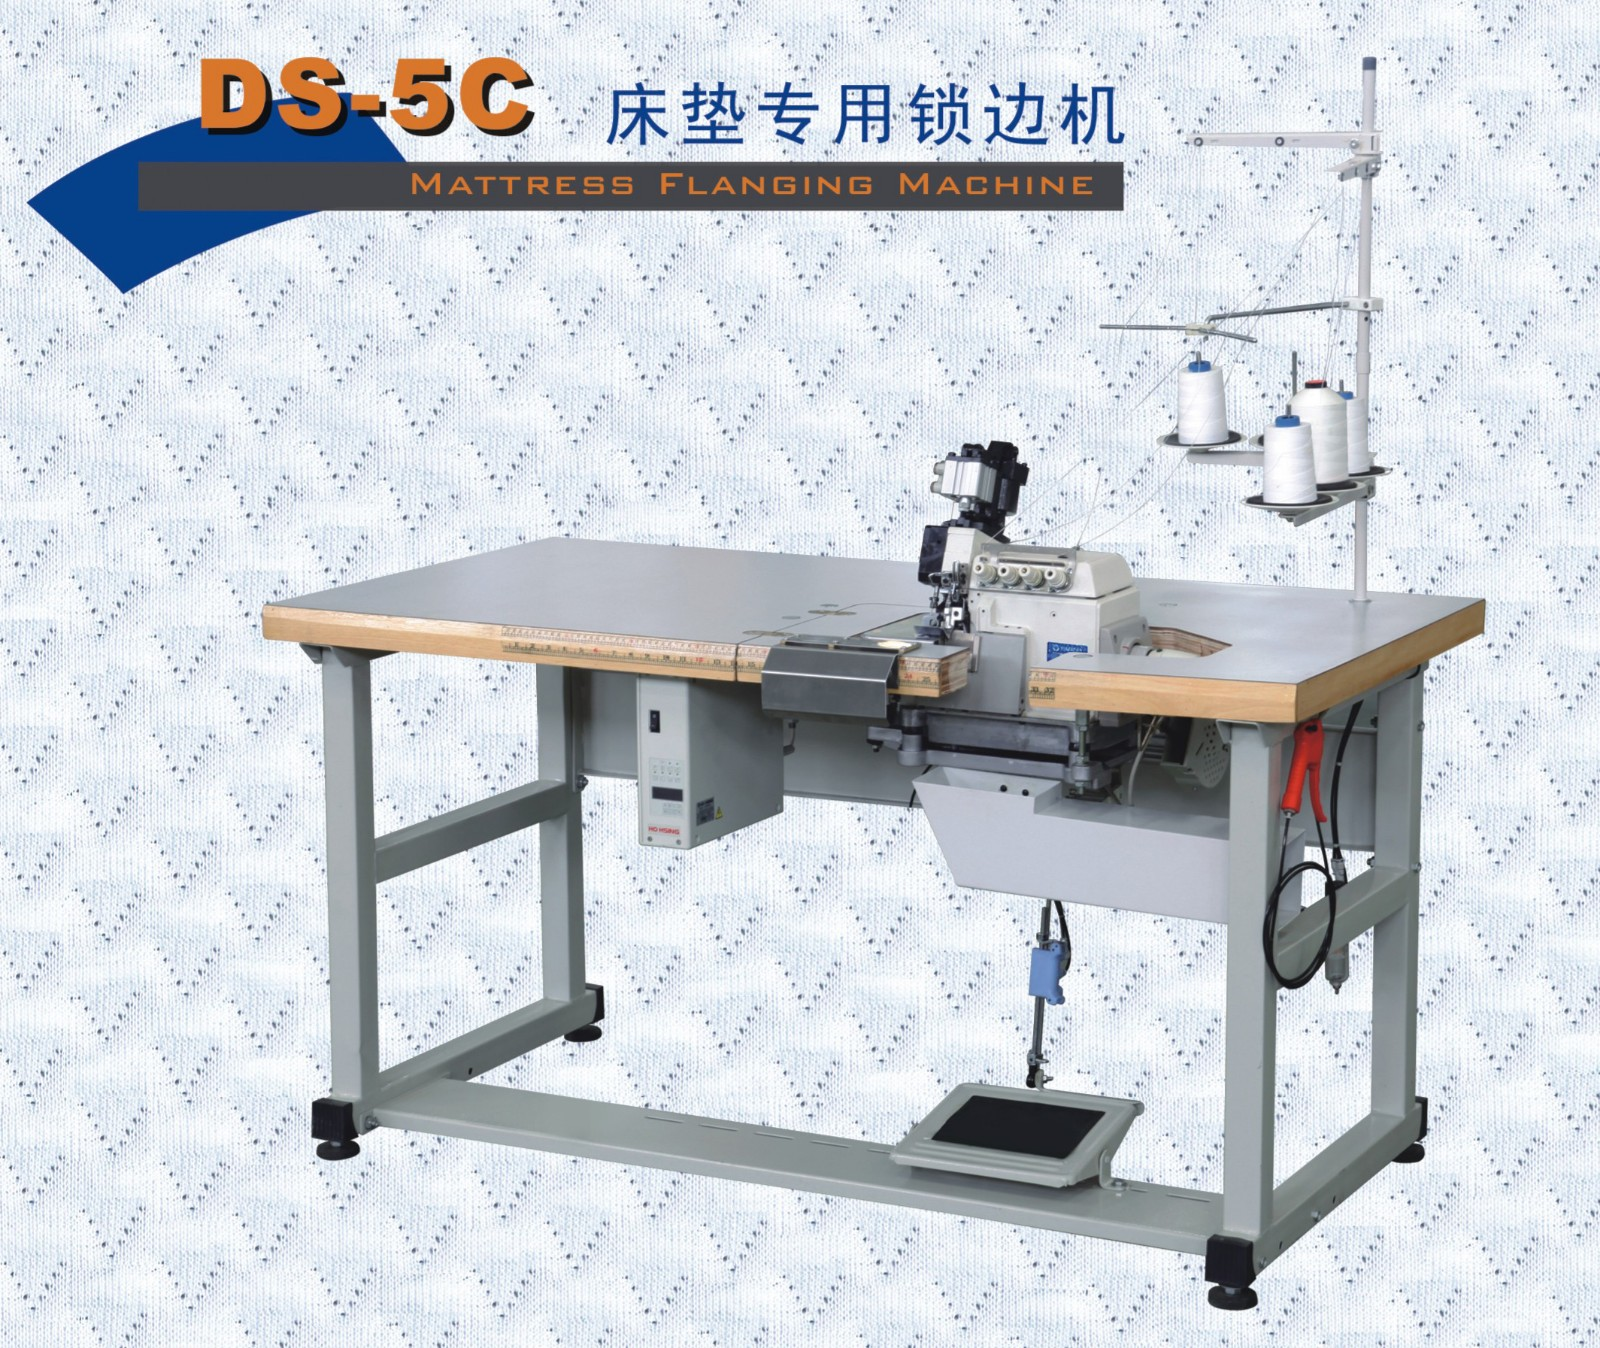 Double Sewing Heads Flanging Machine heads flanging OEM Mattress Flanging Machine YUANTIAN Mattress Machines